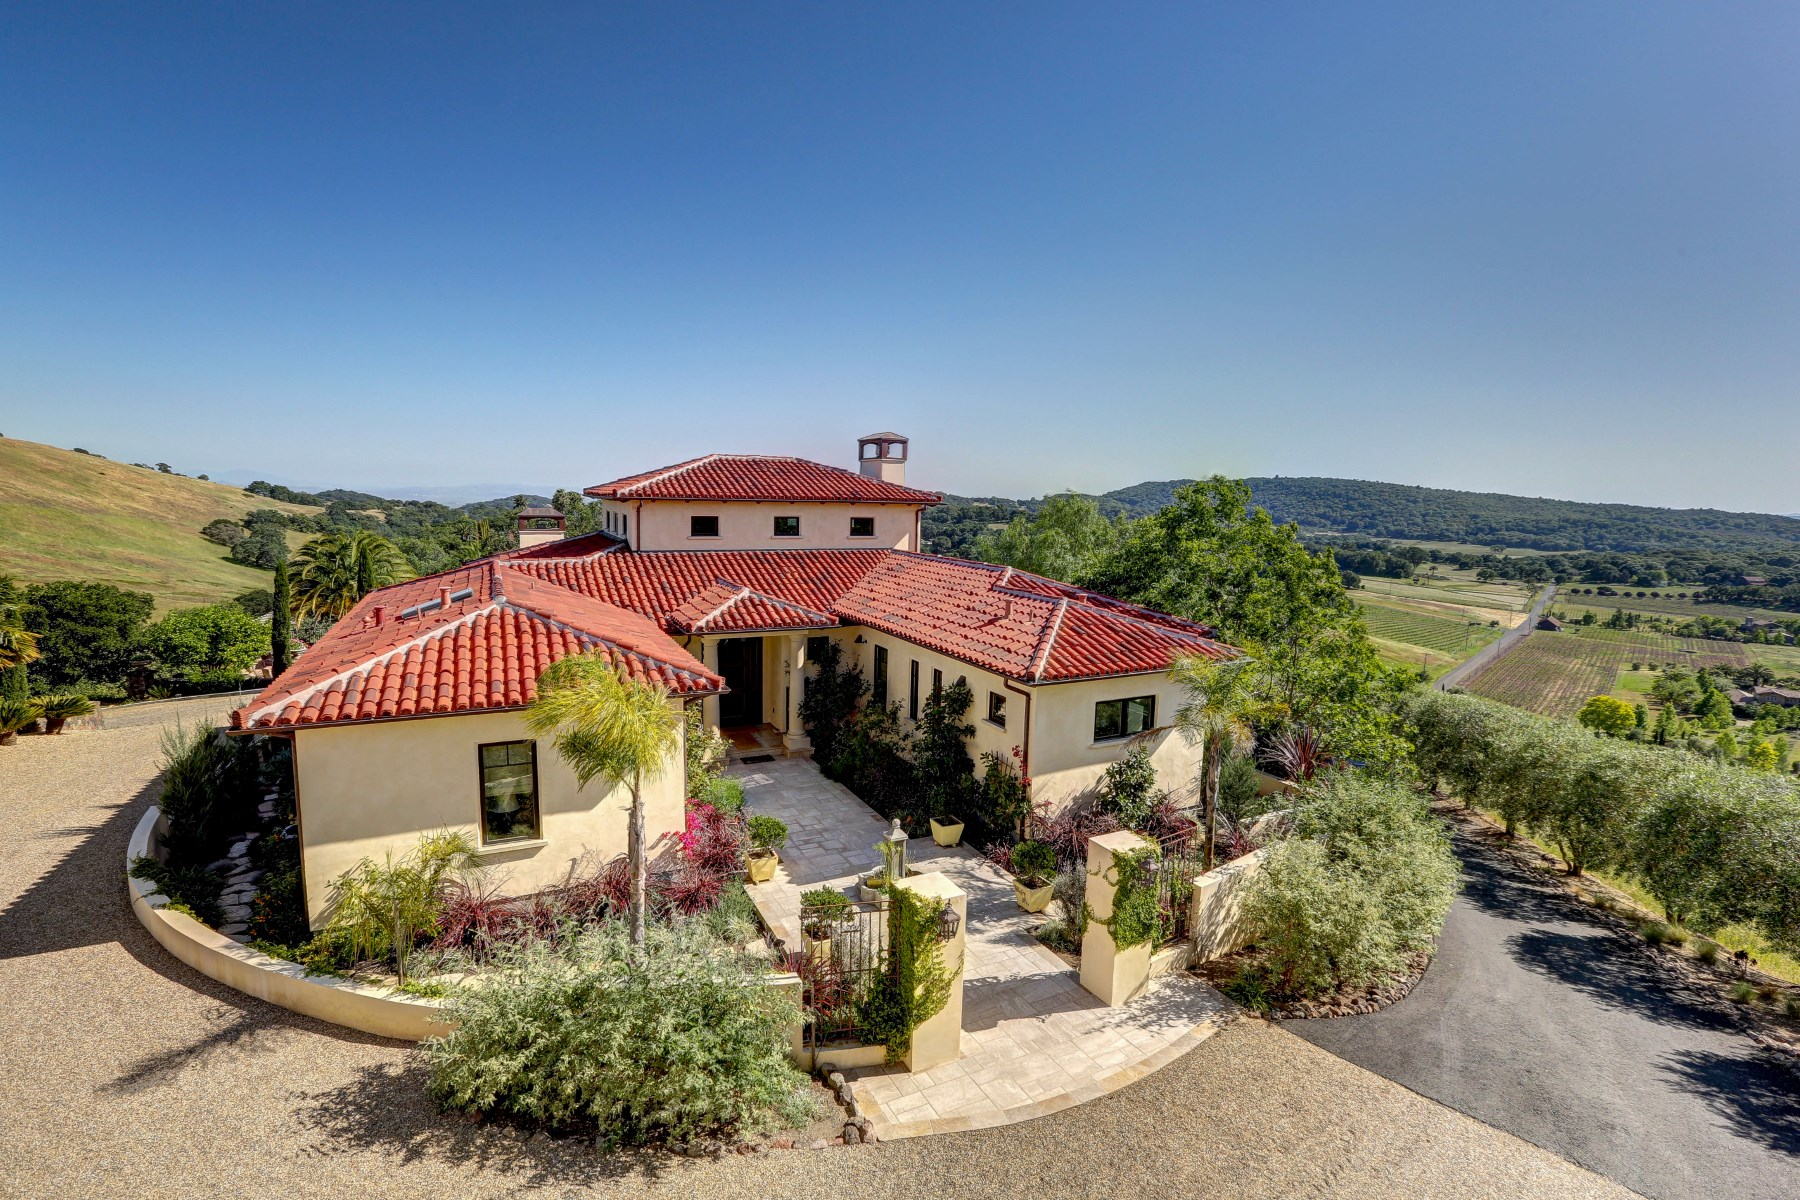 Single Family Home for Sale at Cypress Hill Farm 5180 Lovall Valley Loop Rd Sonoma, California, 95476 United States